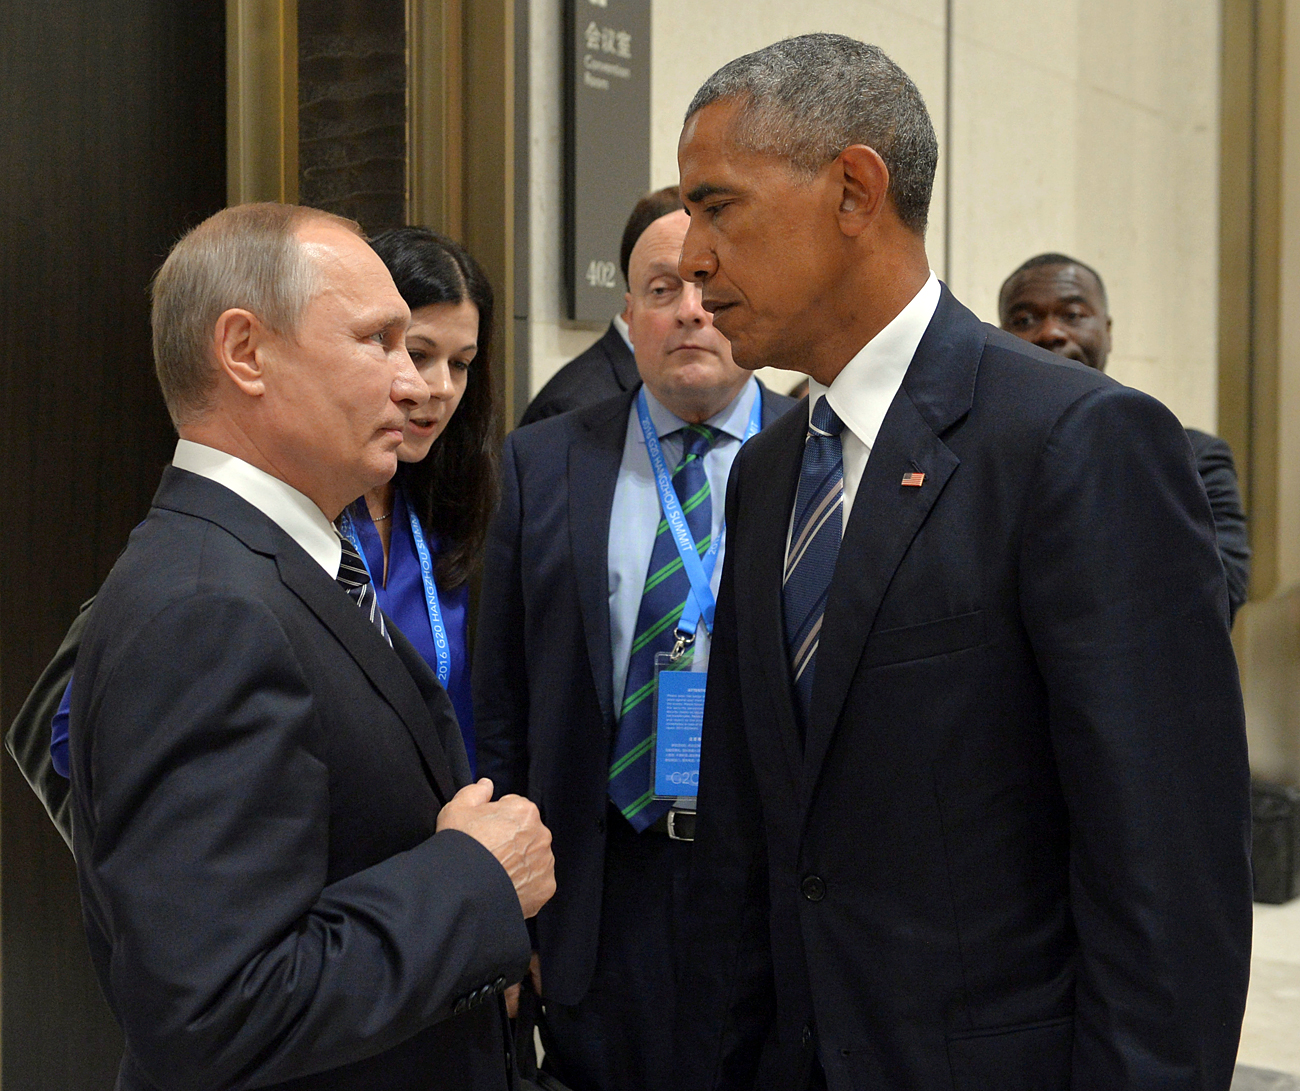 Lack of trust between the Russians and the Americans is a fundamental obstacle to reaching an understanding that could resolve the Syrian conflict. Photo: Russian President Vladimir Putin meets with U.S. President Barack Obama on the sidelines of the G20 Summit in Hangzhou, China, on Spet. 5, 2016.